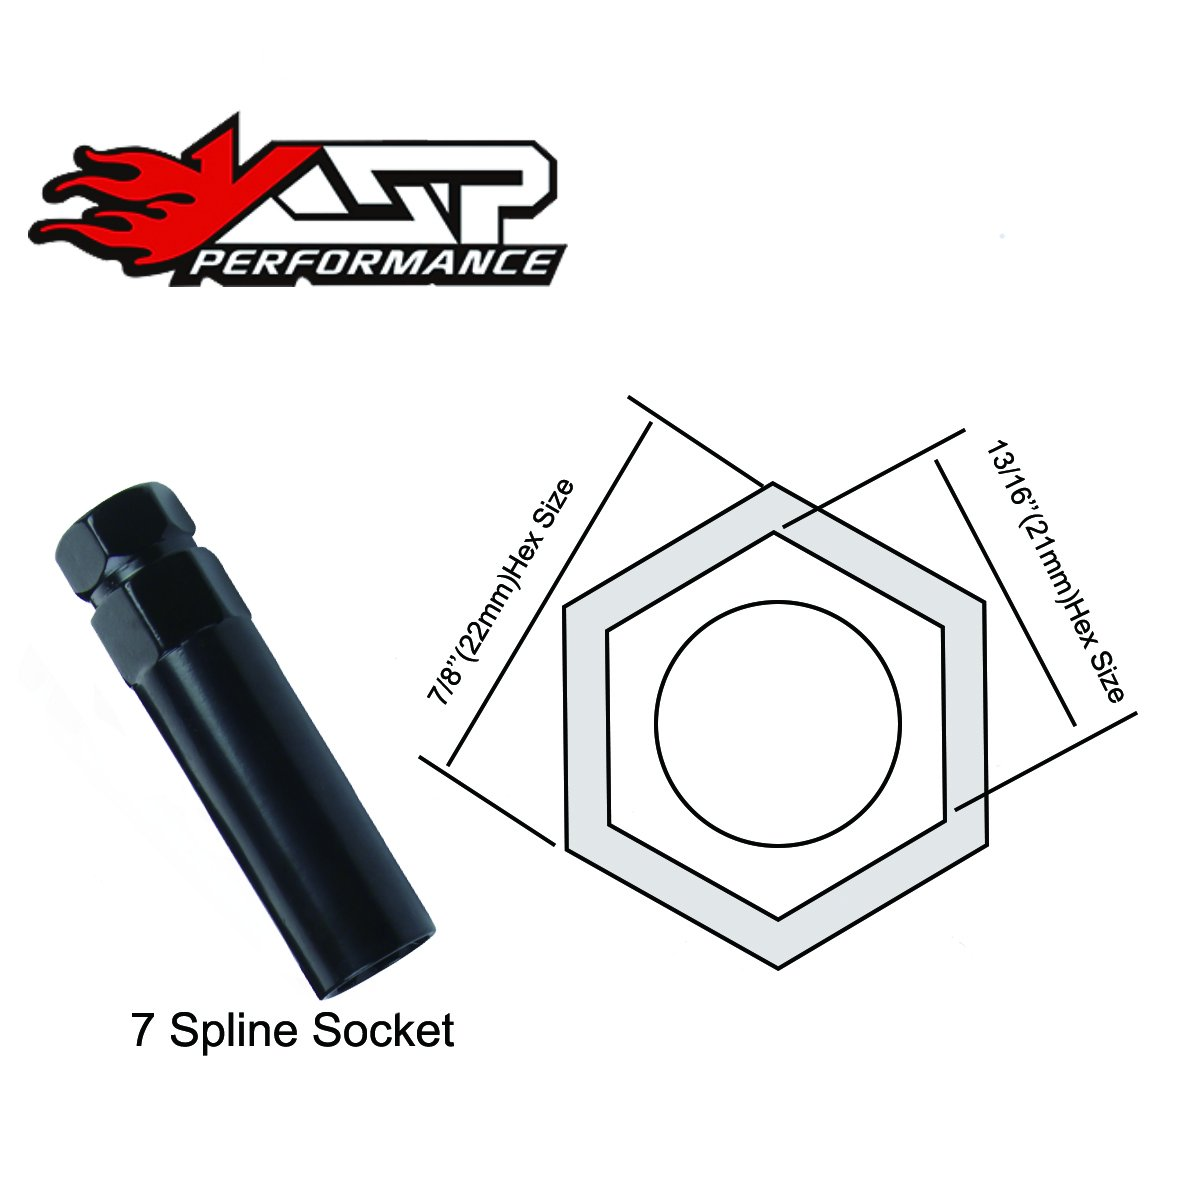 KSP Performance 24PC KSP 14mmx1.5(M14x1.5 thread pitch),60 Degree Conical Cone Seat Wheel Lug Nuts,Closed End 7 Spilne With 2 Keys For Chevy GMC Silverado Sierra Hummer With 6 Lugs Trucks by KSP Performance (Image #5)